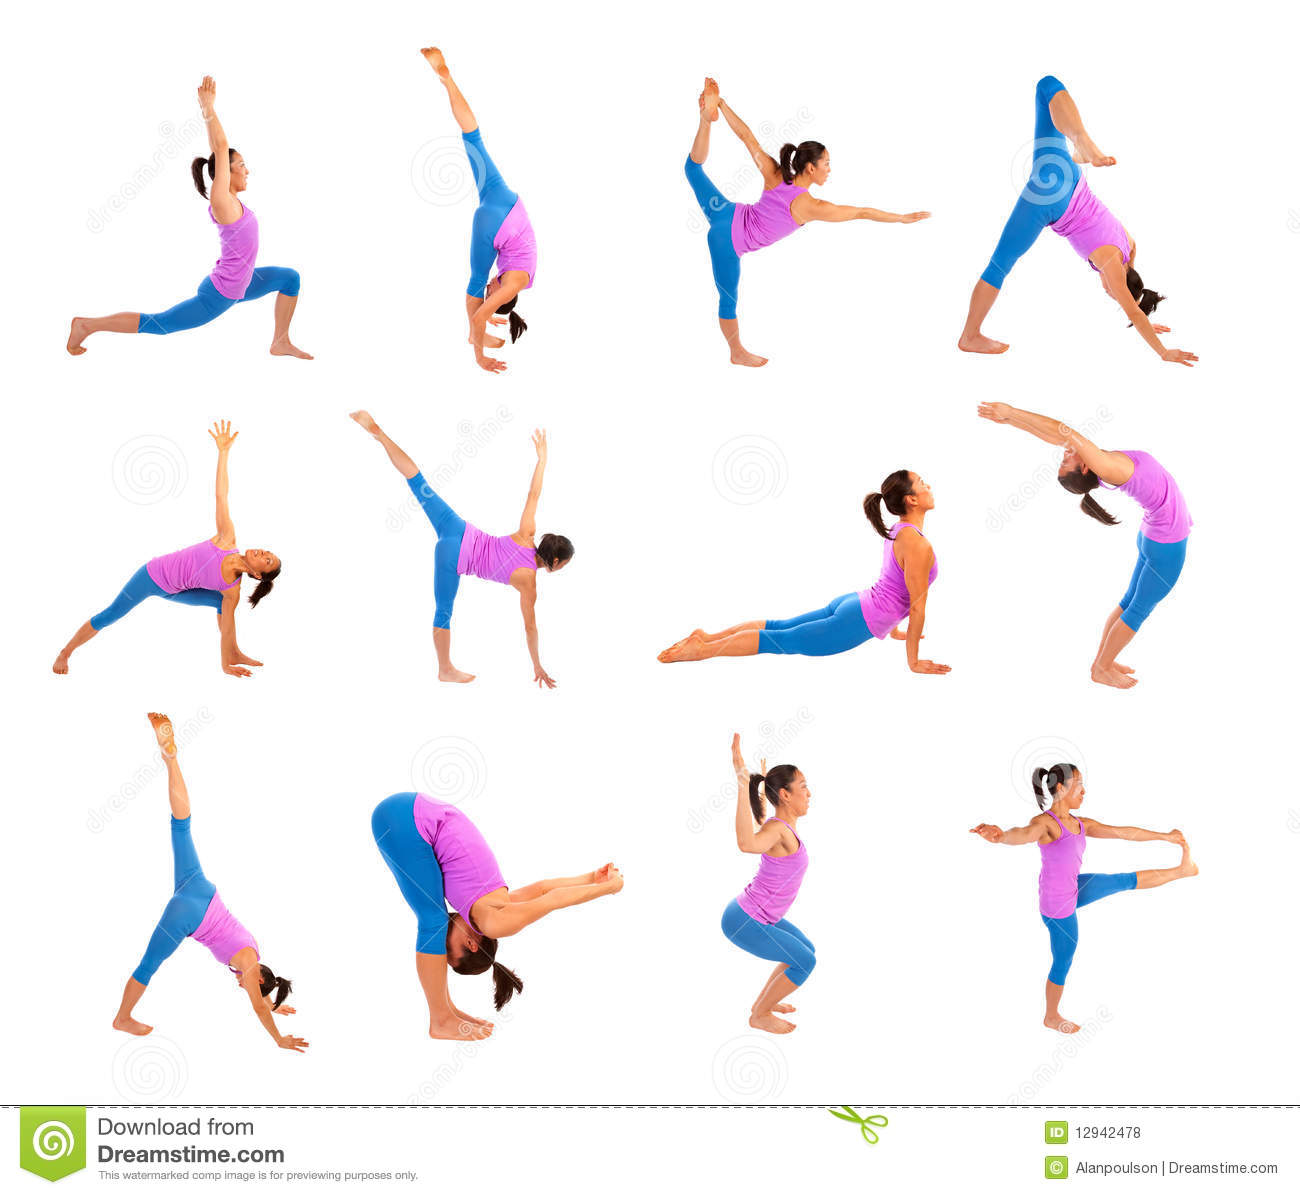 Related Keywords & Suggestions for Yoga Poses For Kids Poster